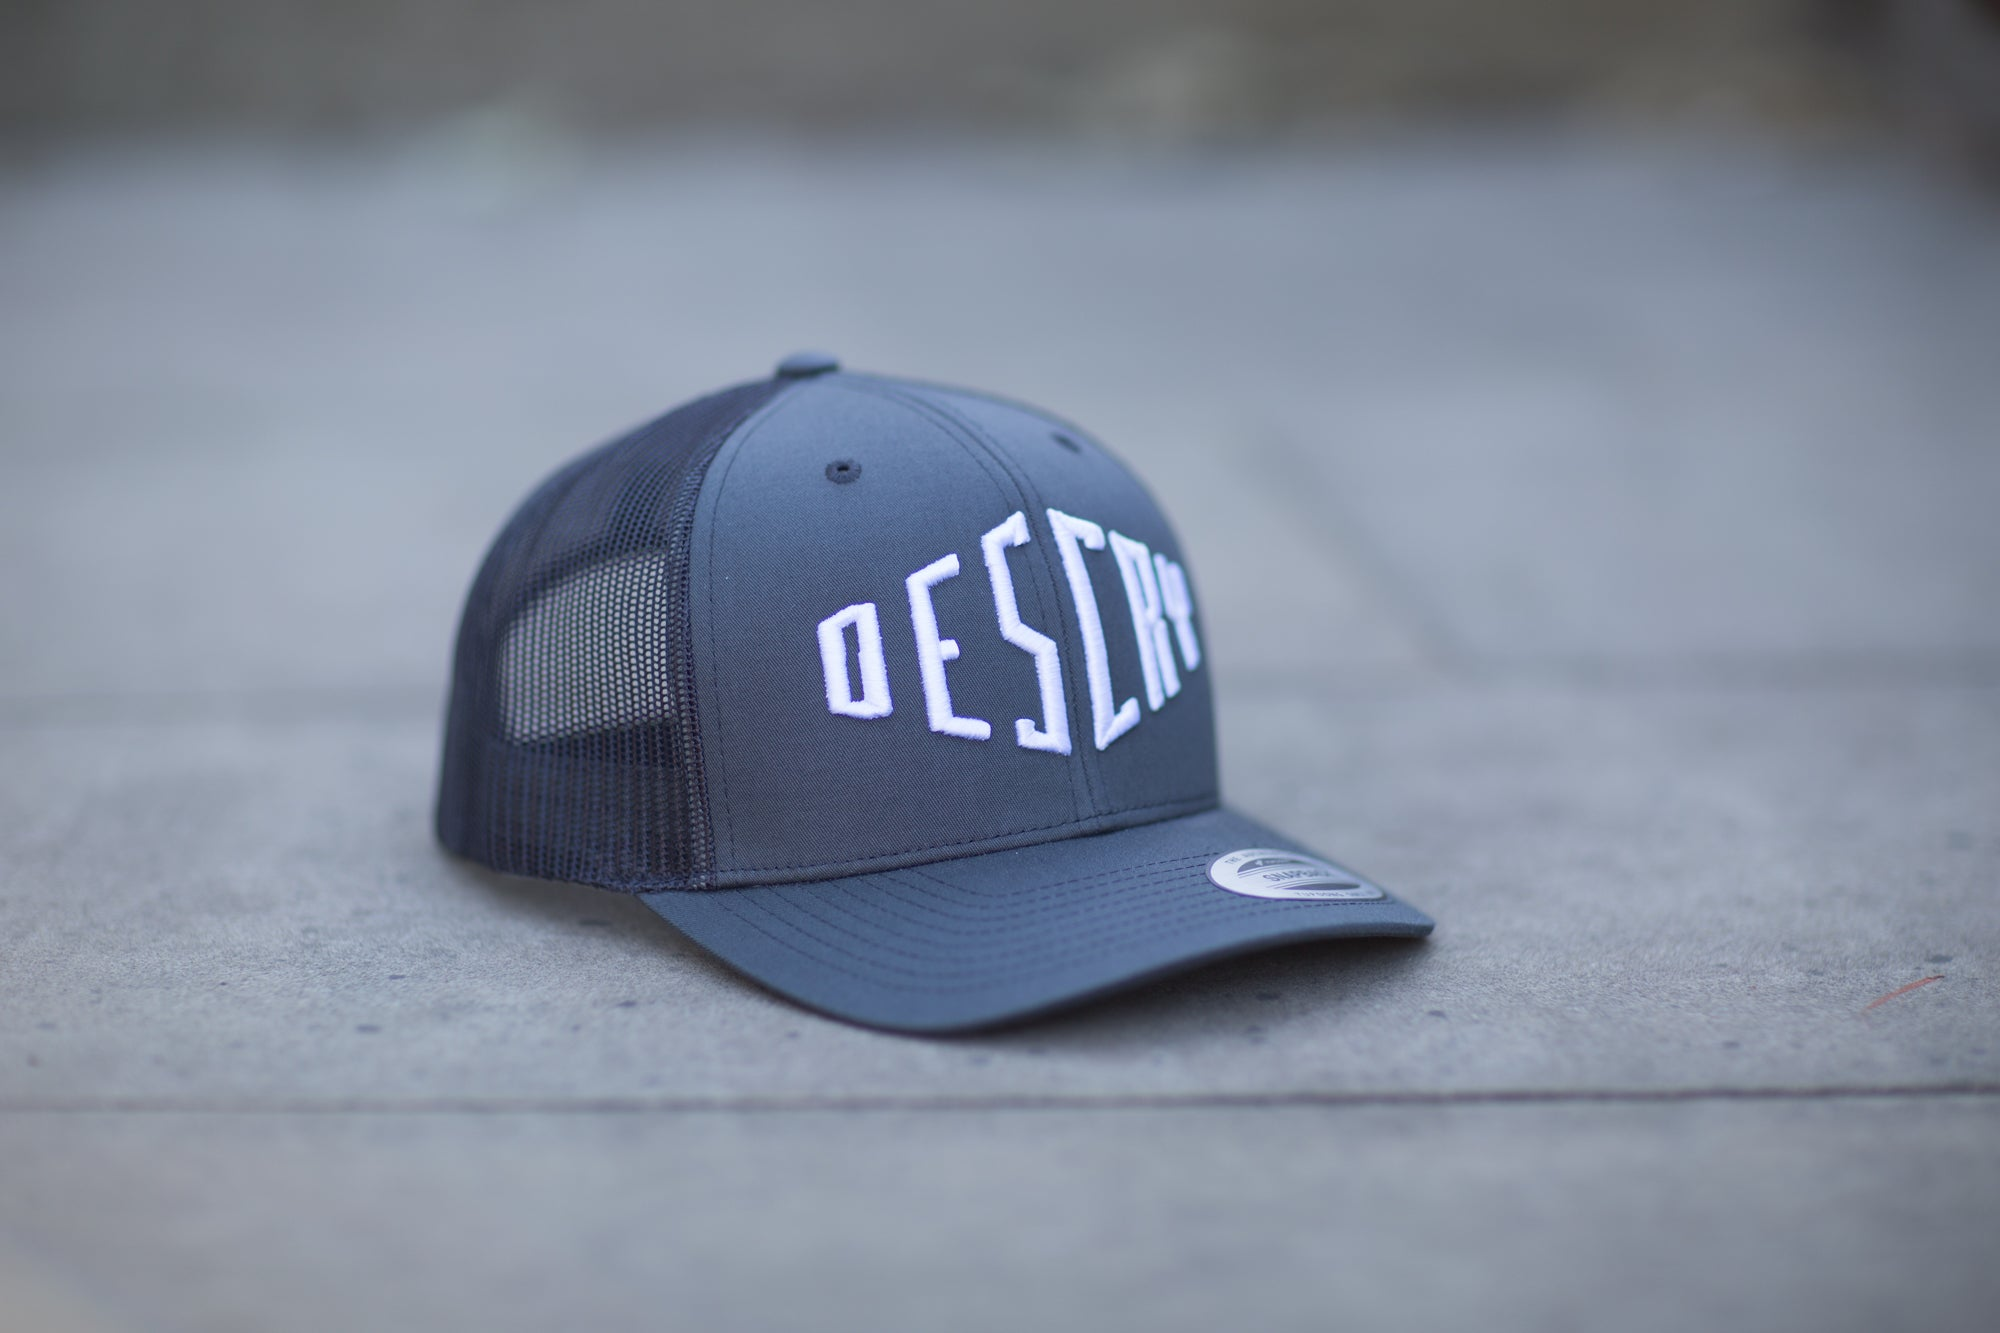 Dark Grey Curved Peak Mesh Trucker